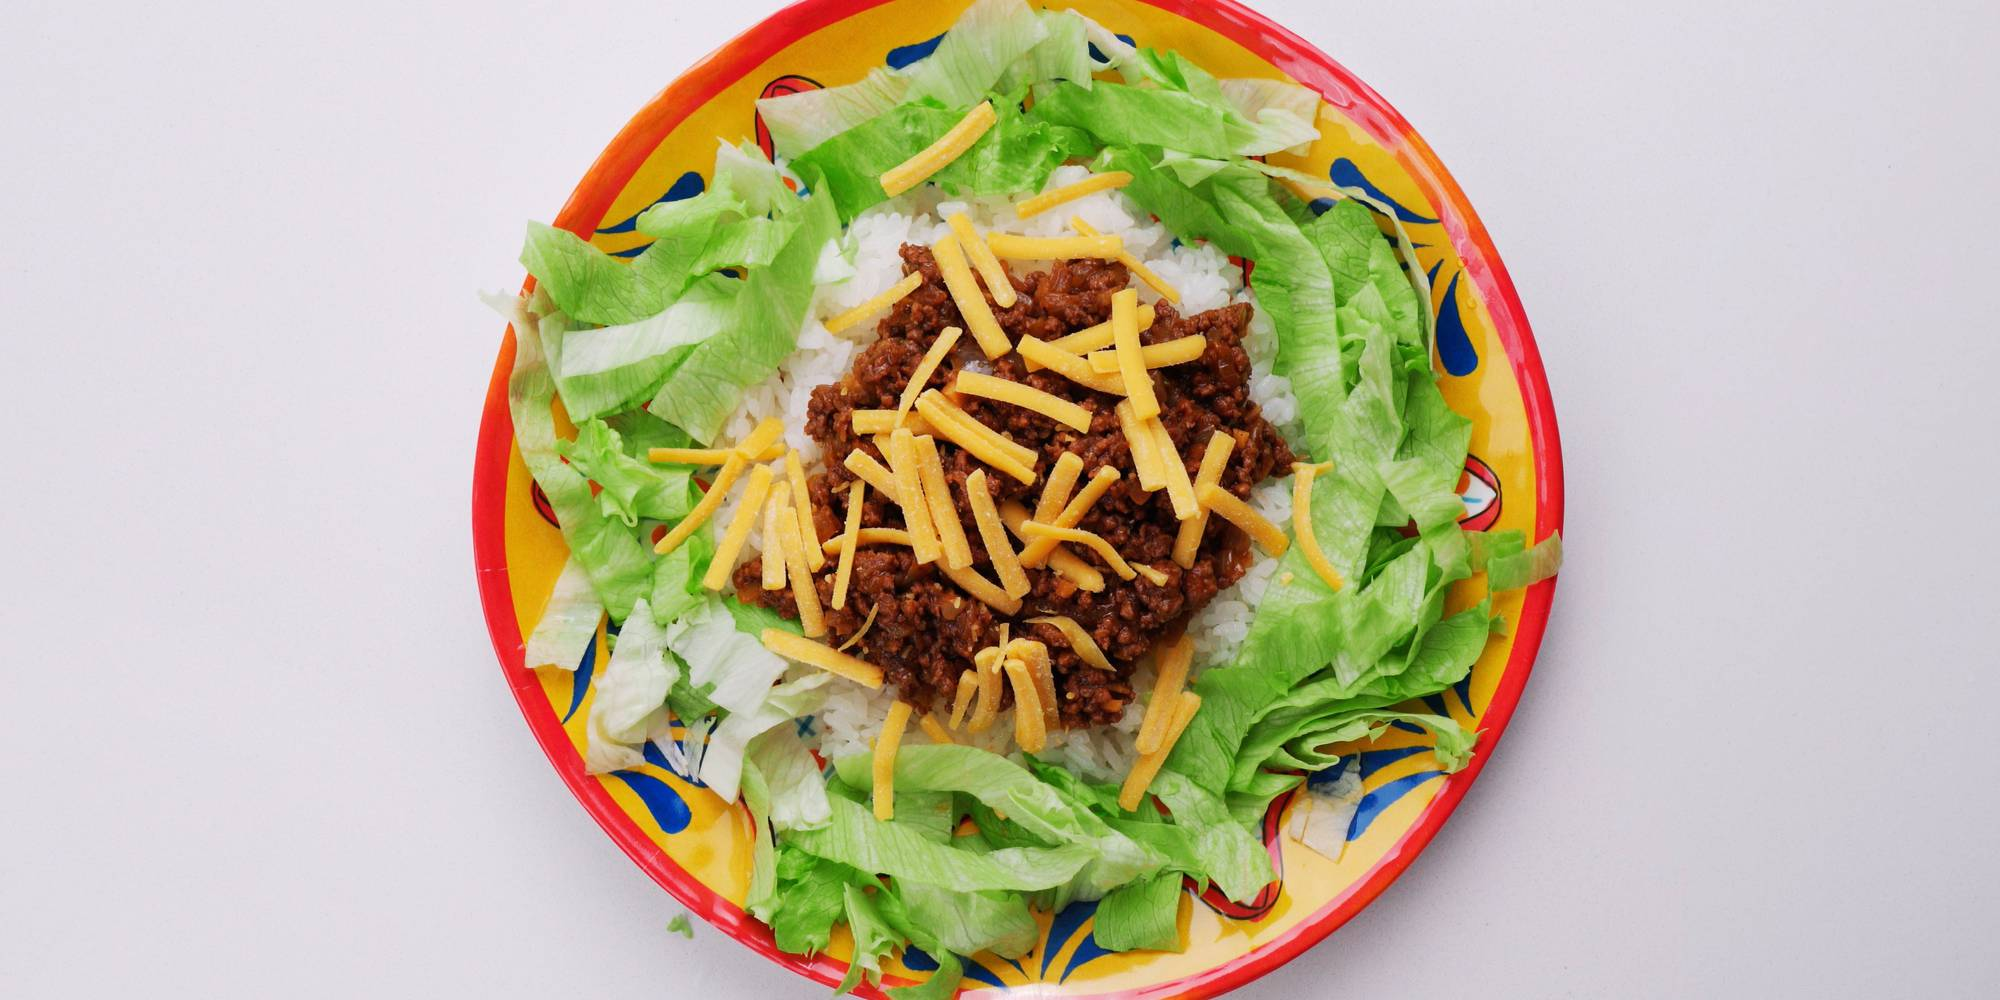 Rice and lettuce with taco meat and cheese.